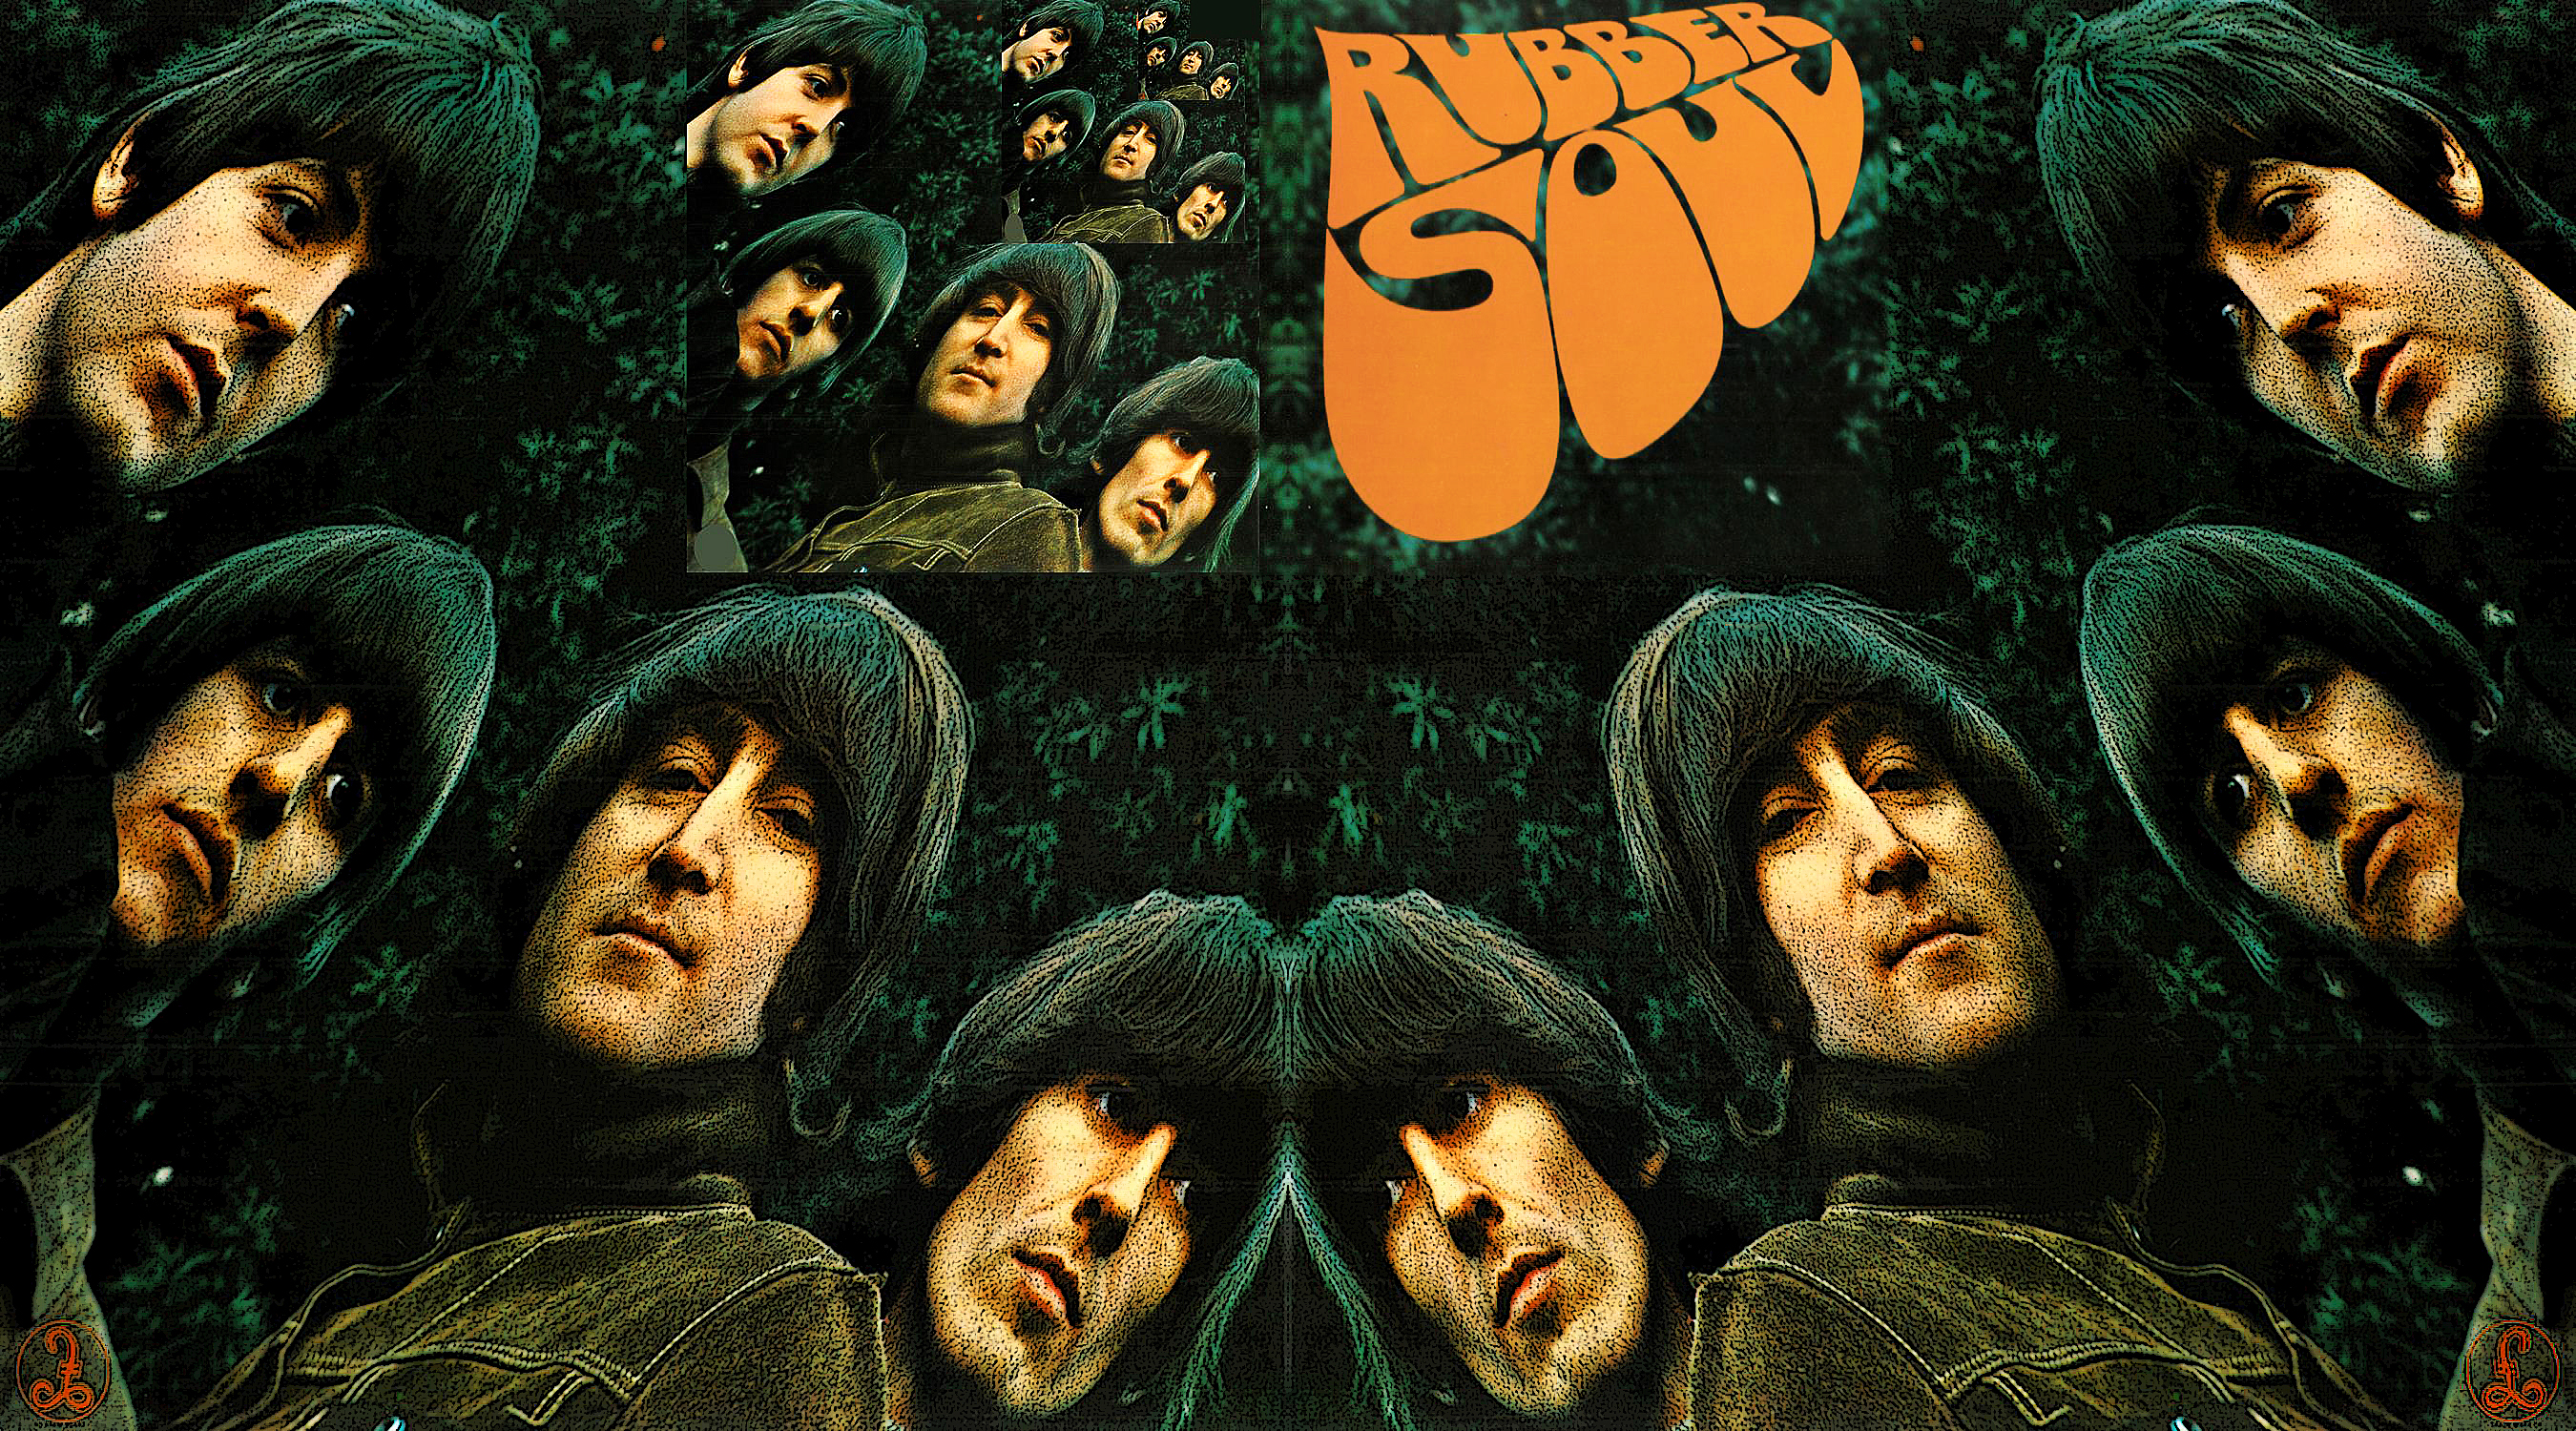 Beatles Rubber Soul 67